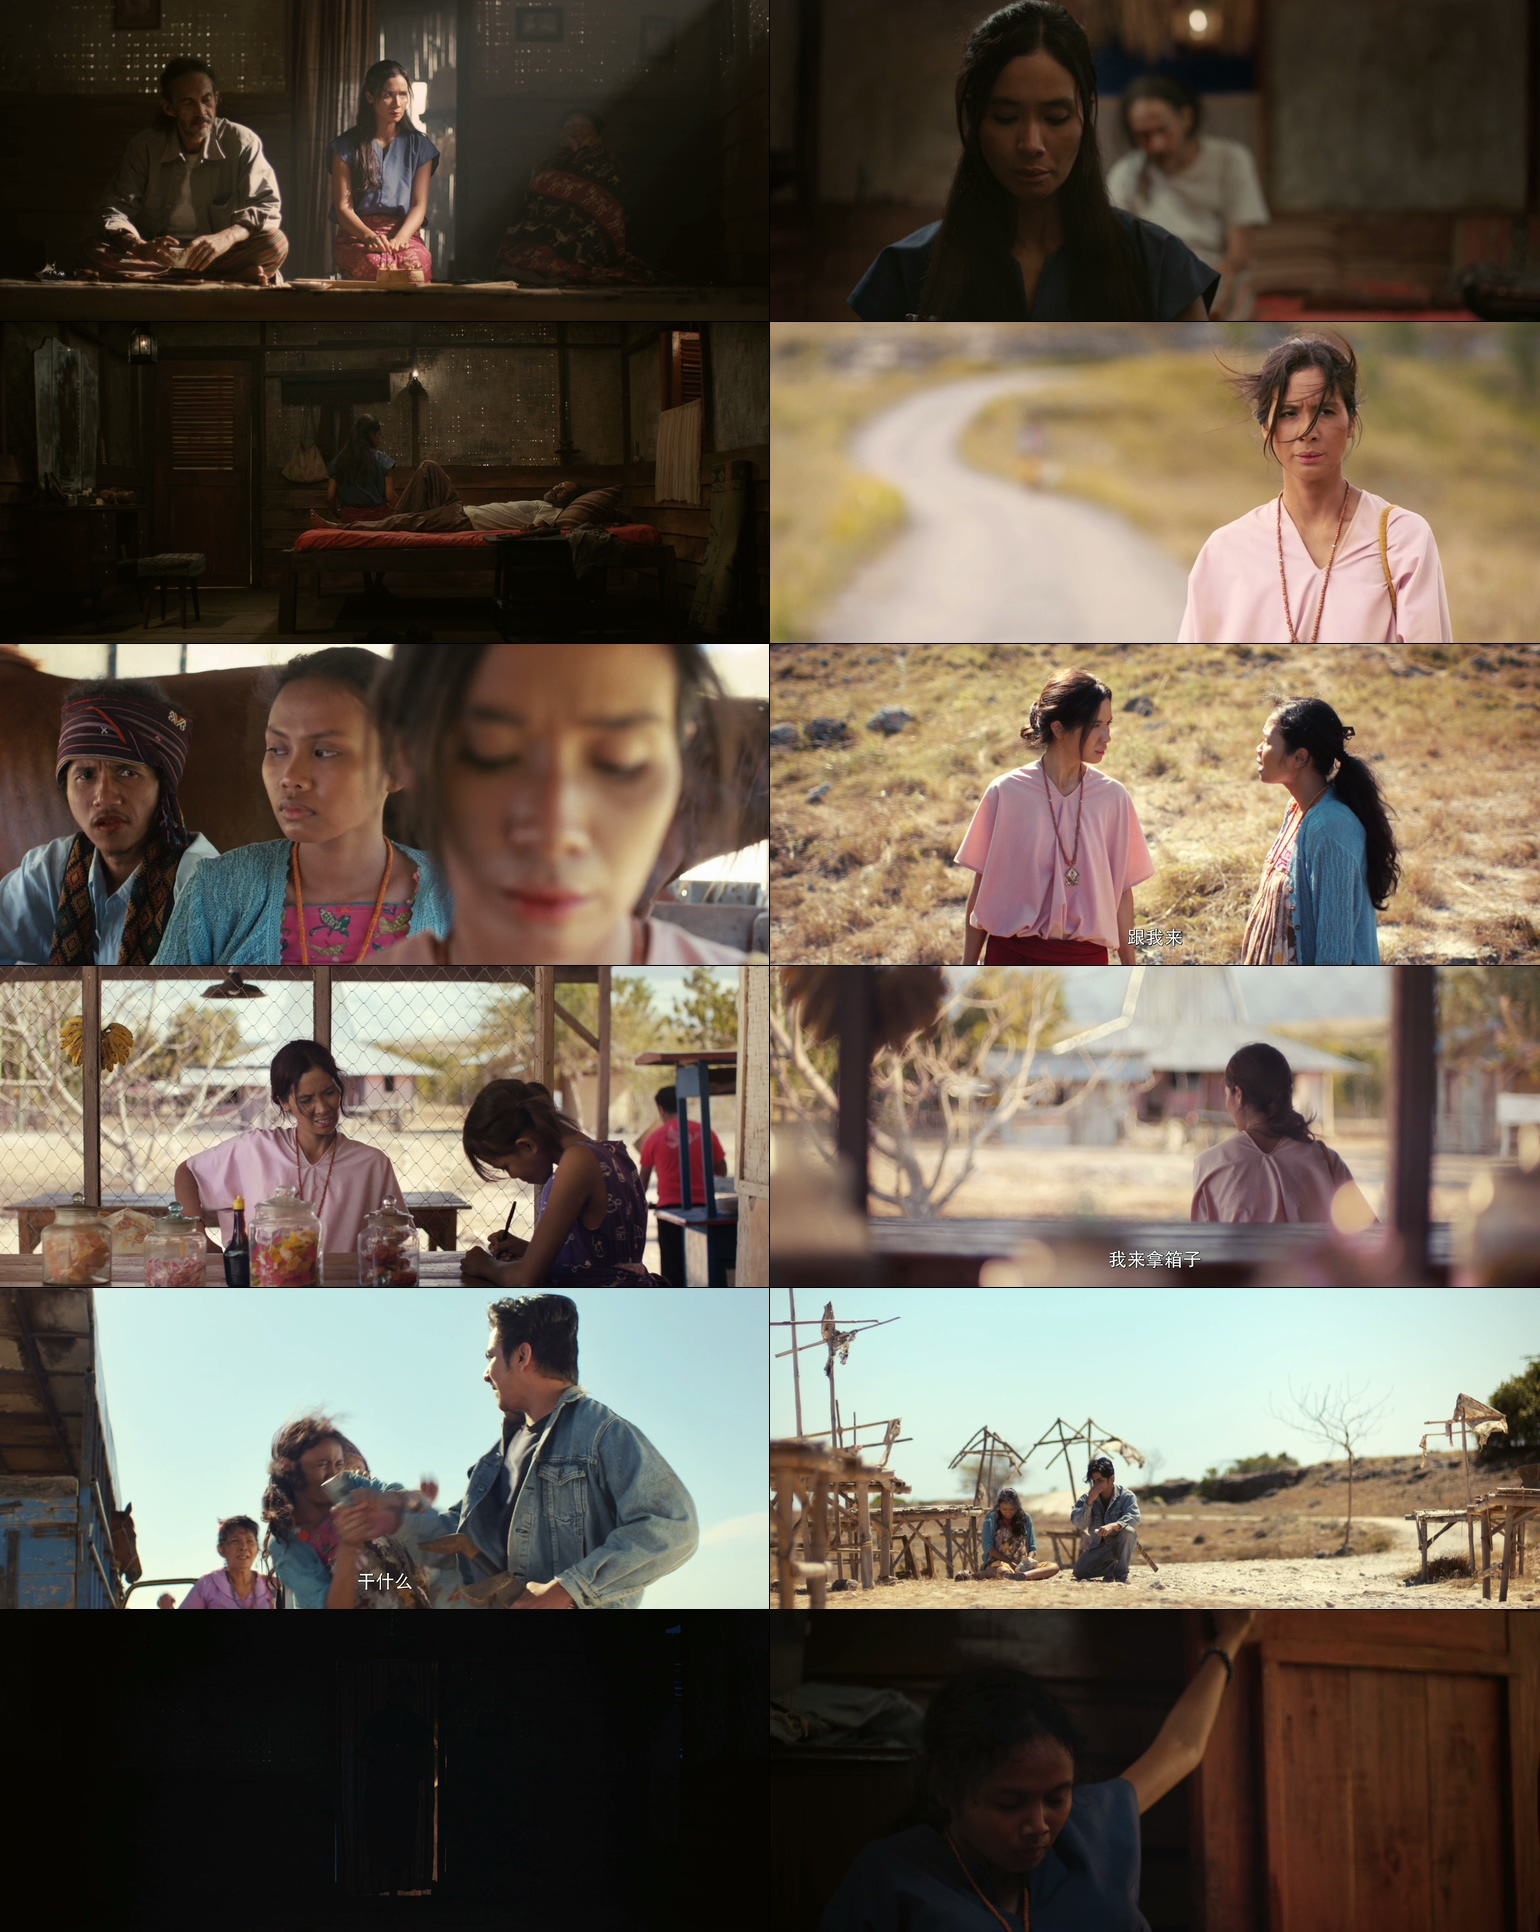 Marlina.the.Murderer.in.Four.Acts.2018.BluRay.1080p.DTS.x264-CHD